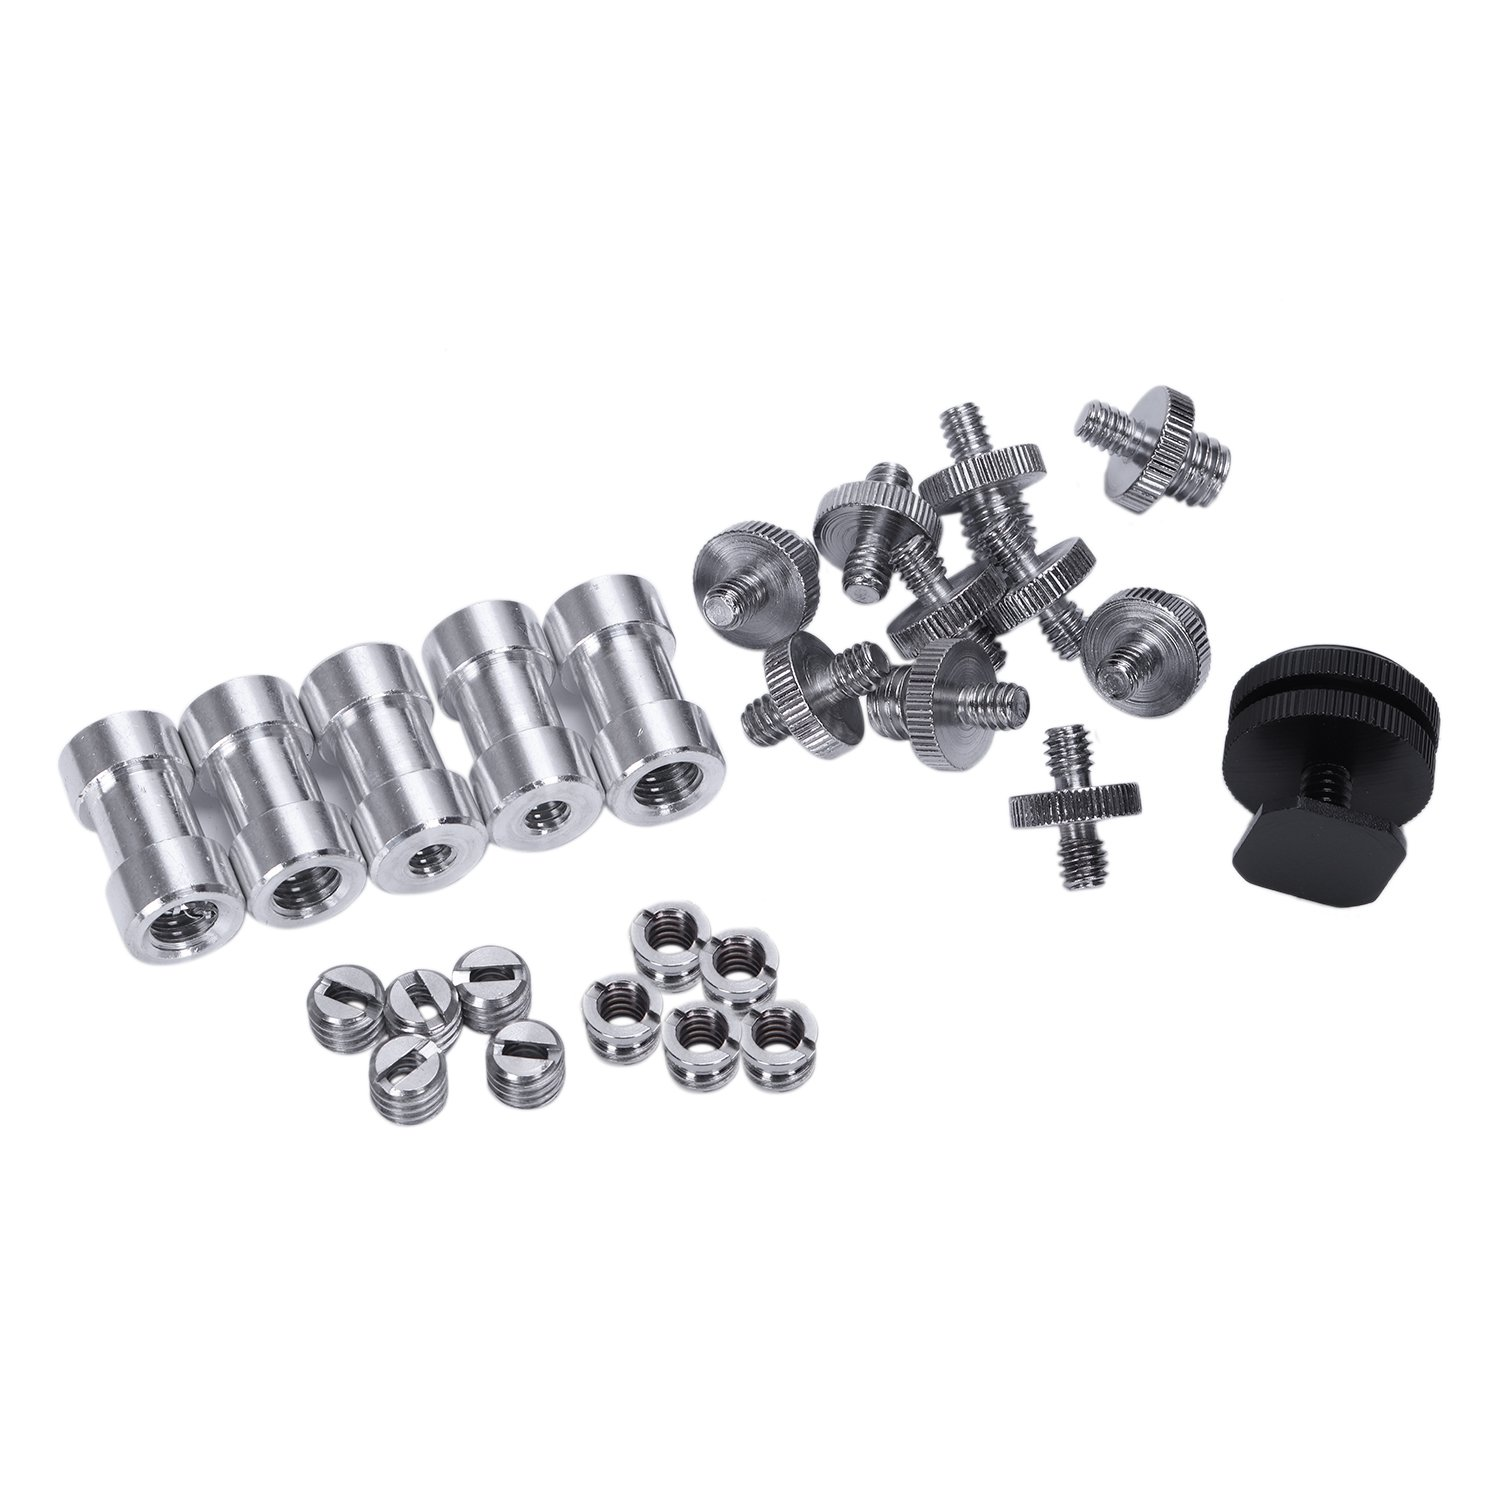 26 Pieces 1/4 Inch And 3/8 Inch Converter Female Male Threaded Screws Adapter Mount Set For Camera/Tripod/ Monopod/Ballhead/ L26 Pieces 1/4 Inch And 3/8 Inch Converter Female Male Threaded Screws Adapter Mount Set For Camera/Tripod/ Monopod/Ballhead/ L